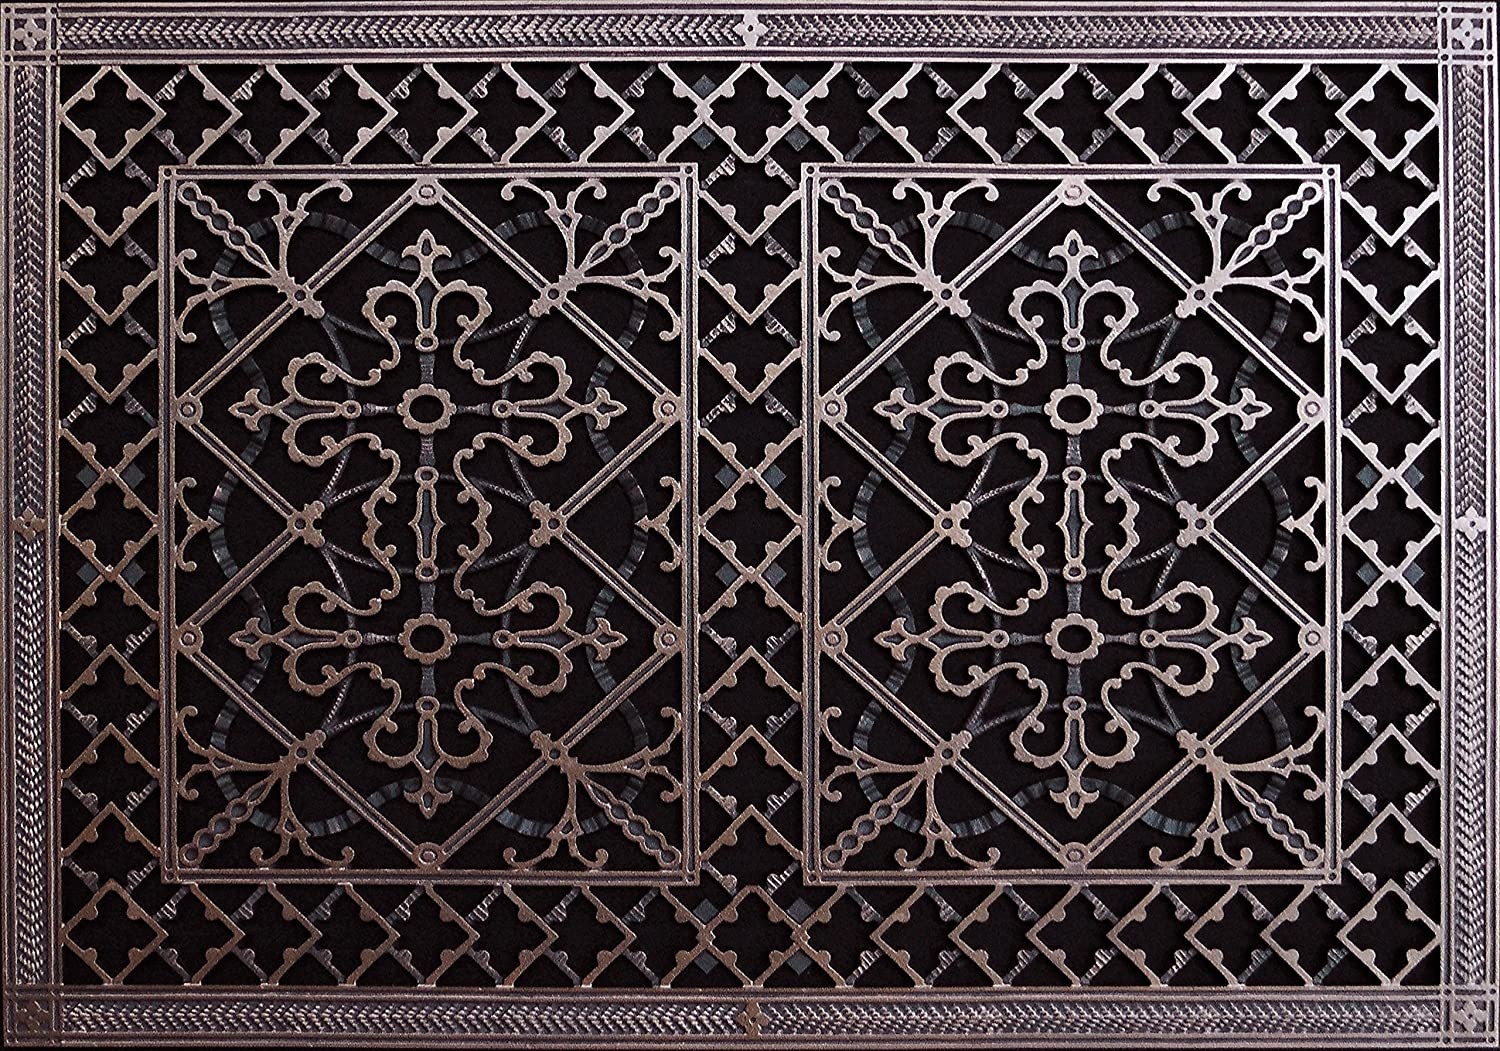 Decorative Grille, Vent Cover, or Return Register. Made of ...